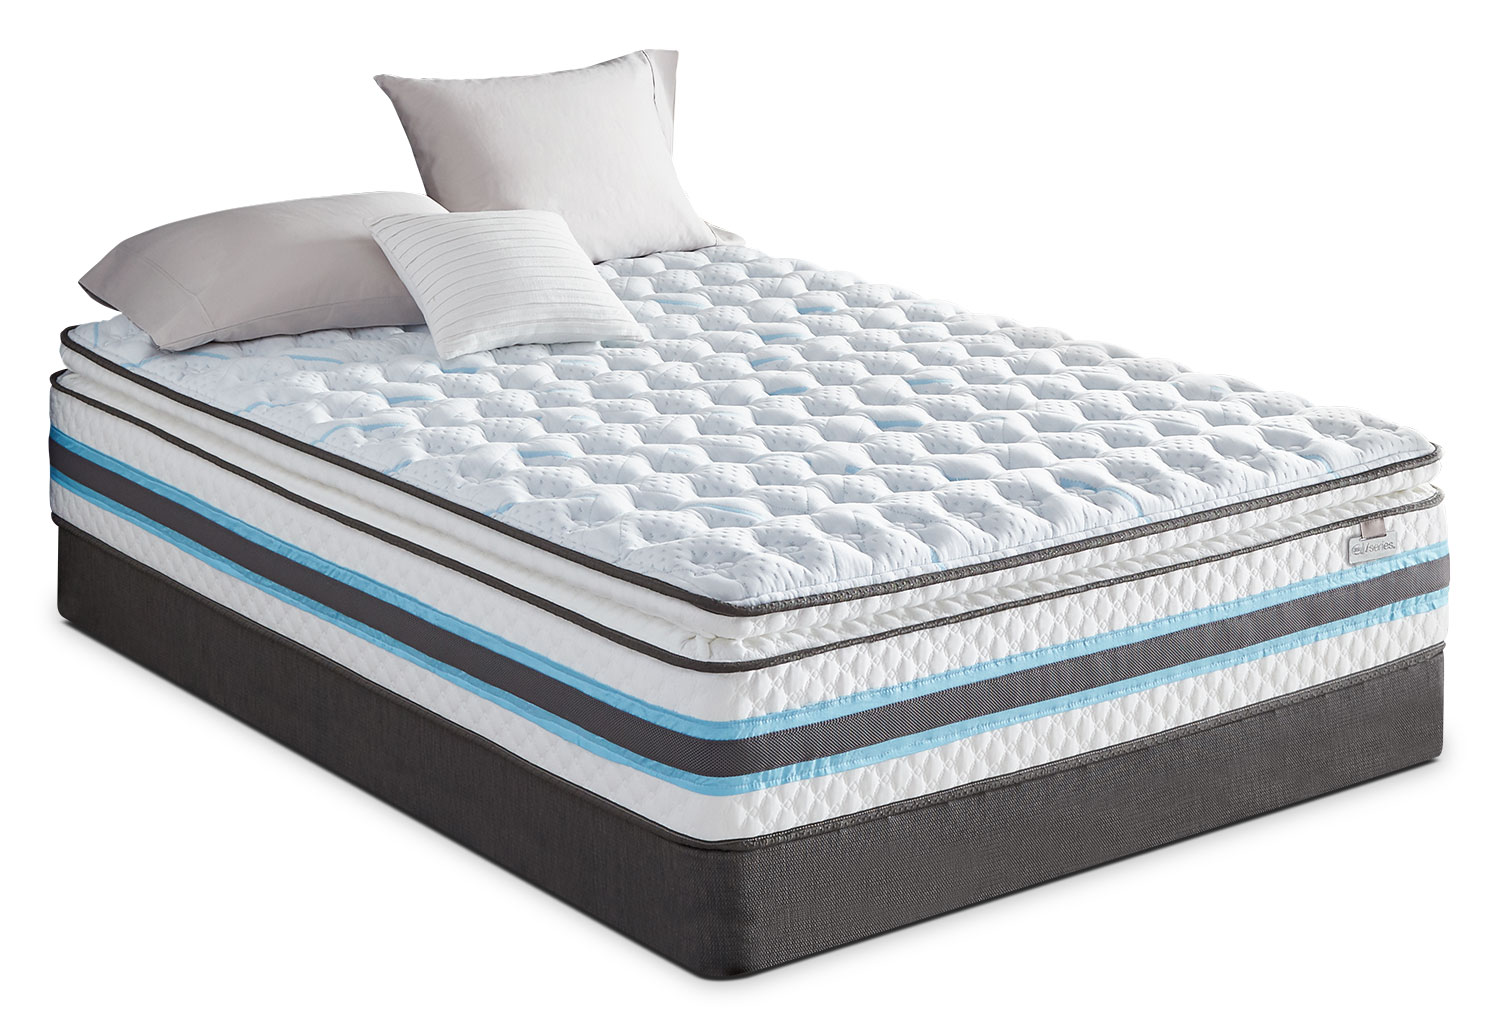 Serta Iseries Breathtaking Firm Pillowtop Mattress